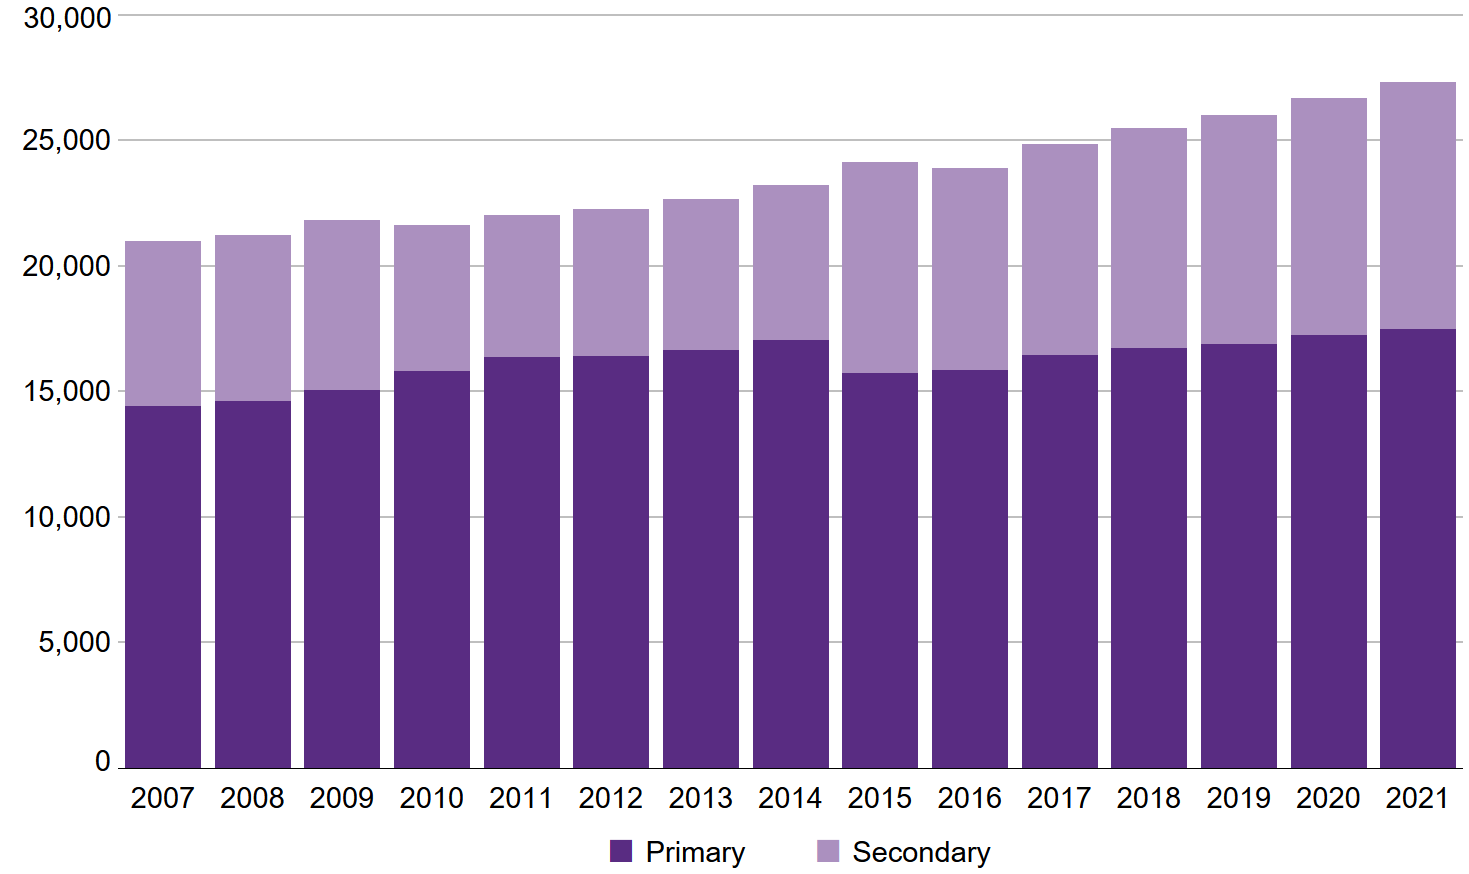 A stacked column chart showing the number of Aboriginal public school students by primary, secondary and all. The total number of Aboriginal students increased from 20,974 in 2007 to 26,688 in 2020 and 27,330 in 2021. The number of Aboriginal primary students gradually increased from 14,427 in 2007 to 17,056 in 2014. It then decreased to 15,739 in 2015 when Year 7 moved to secondary, and has steadily increased thereafter to 17,250 in 2020 and 17,464 in 2021. The number of Aboriginal secondary students gradually increased from 6,547 in 2007 to 6,755 in 2009. There was a substantial decrease to 5,824 in 2010 which was due to the half cohort entering secondary, followed by a gradual increase to 6,163 in 2014. In 2015 there was a substantial increase to 8,379 after the half cohort exited secondary at the end of 2014 and the move of Year 7 to secondary. Since then the secondary numbers have increased gradually to 9,438 in 2020 and 9,866 in 2021.